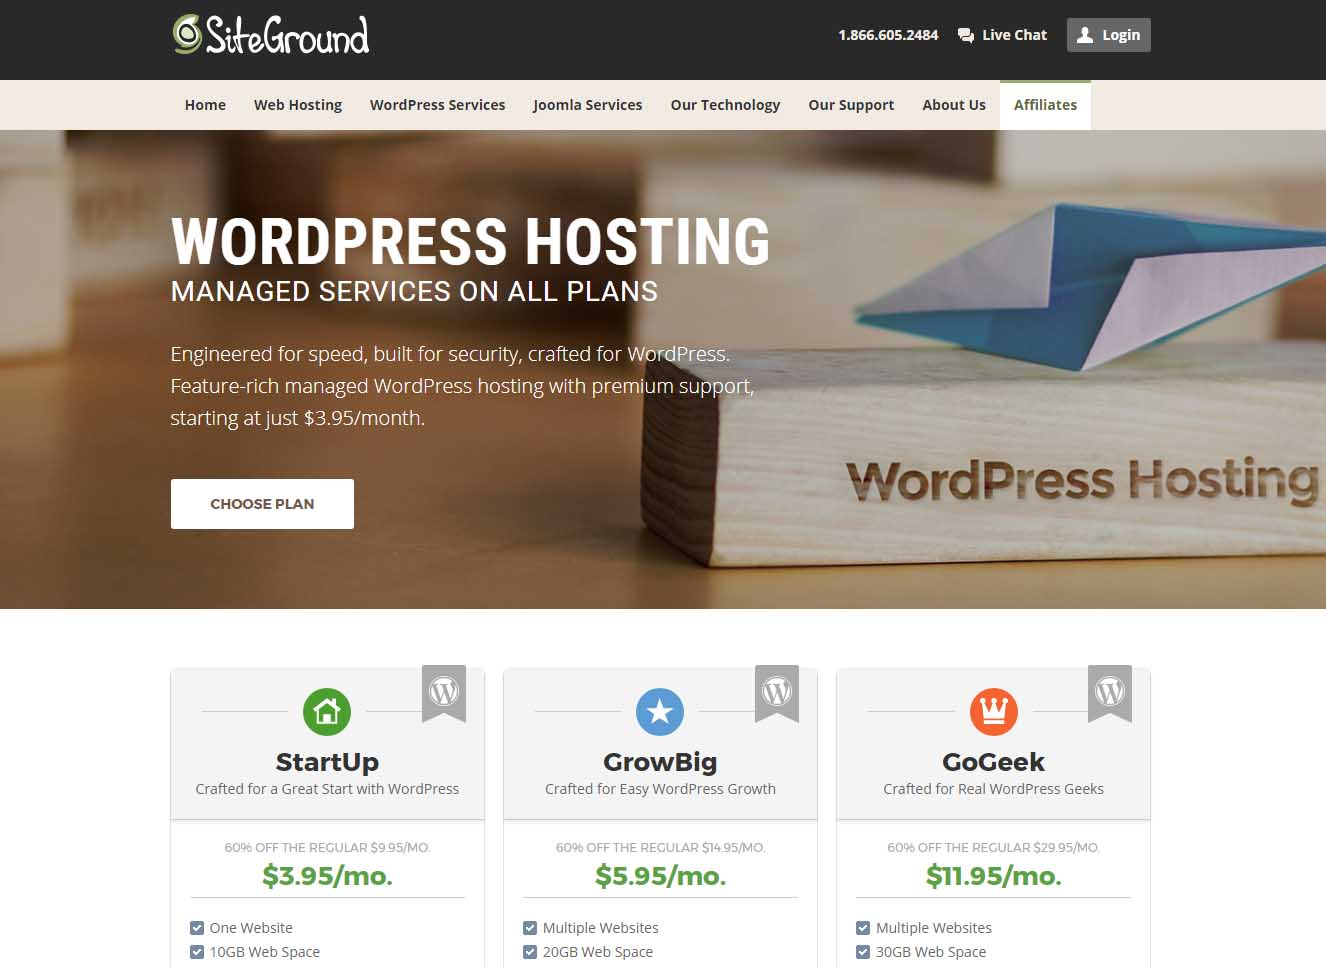 siteground-best-wordpress-hosting-provider